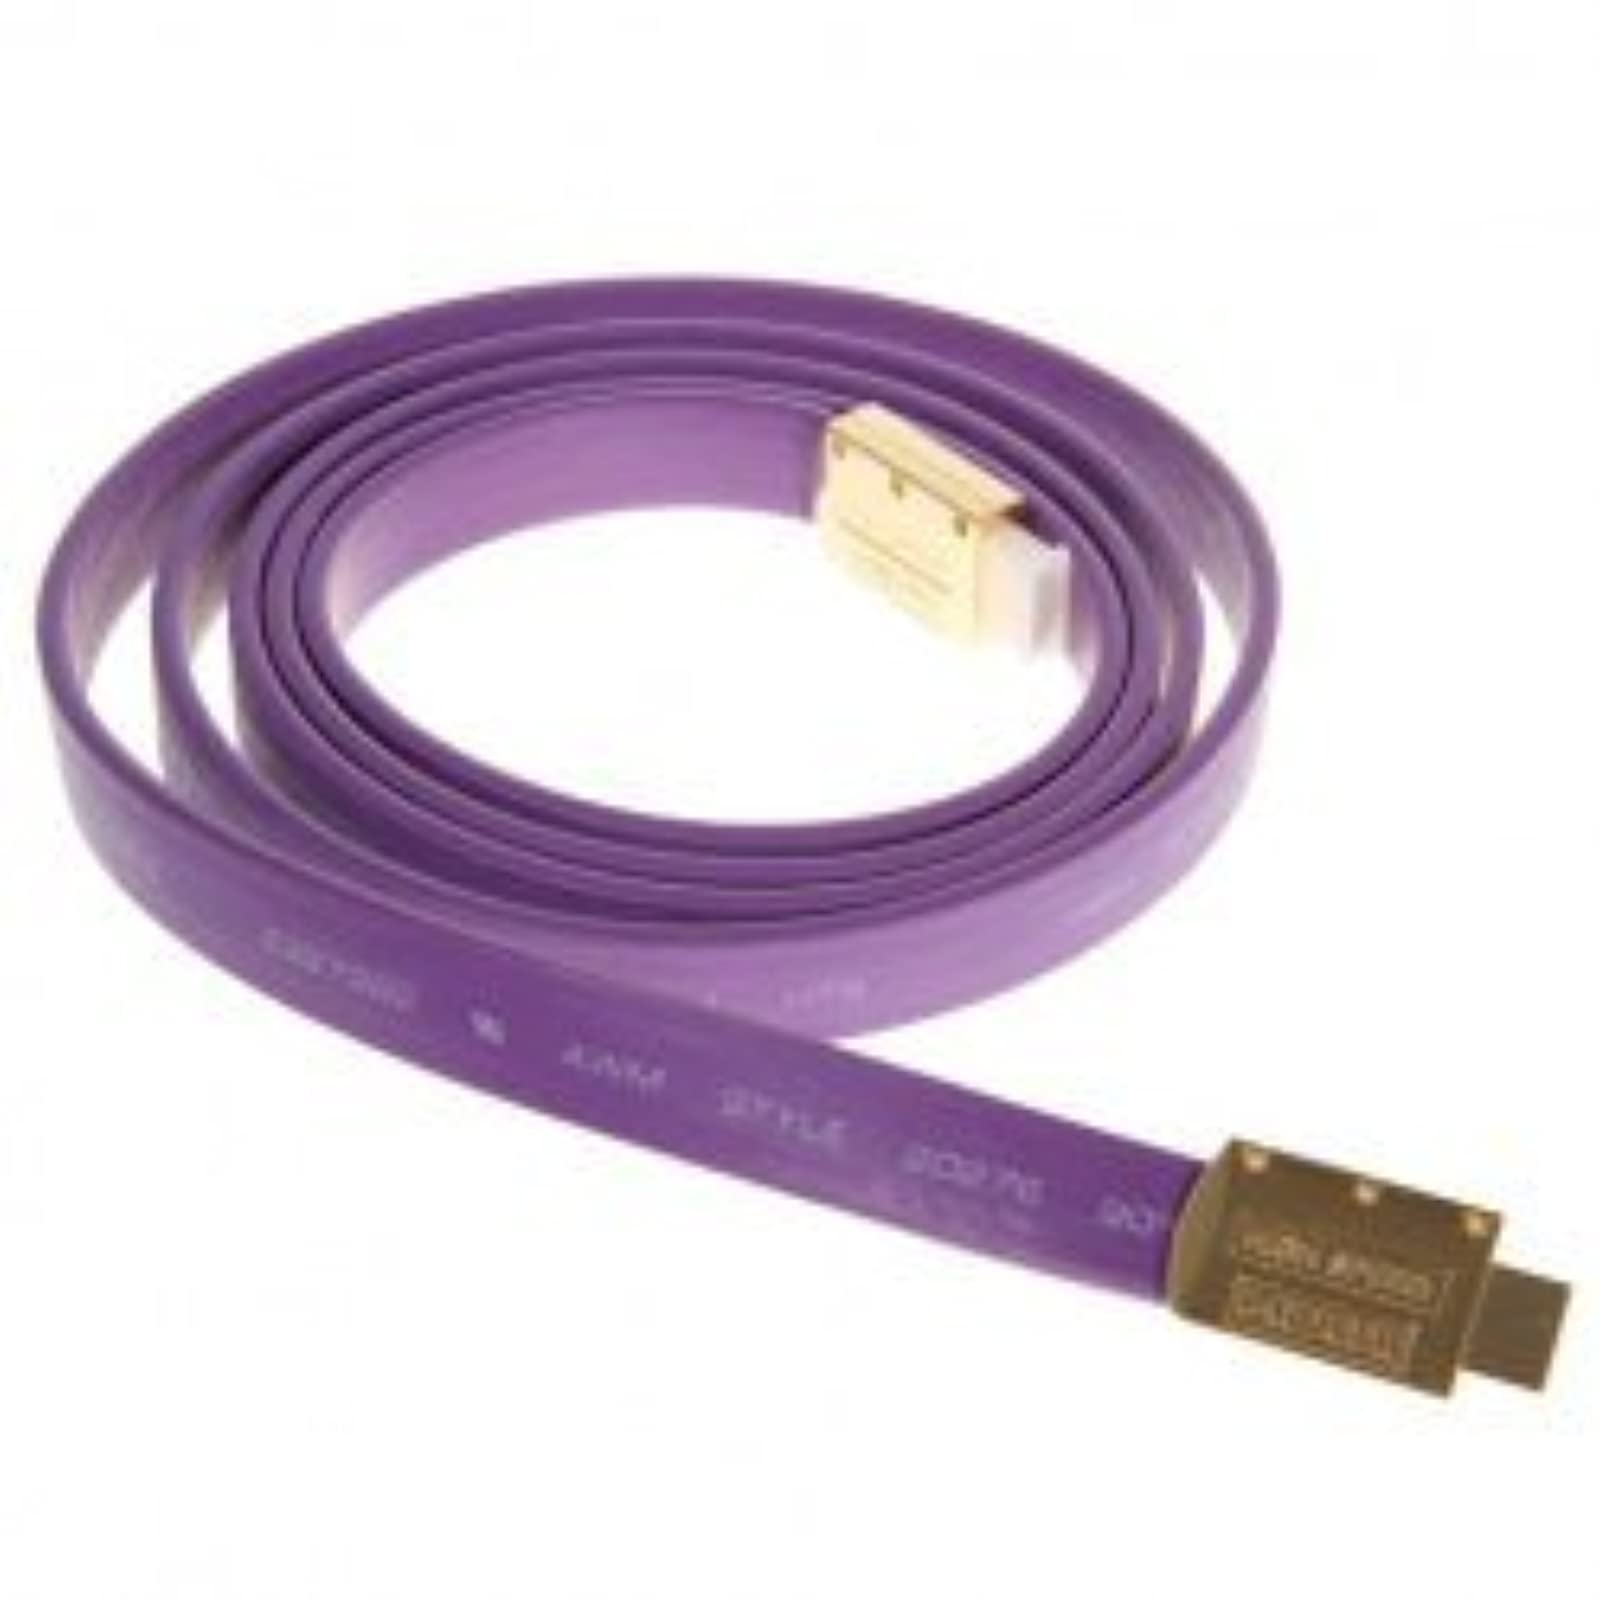 2M 30V Awm 20276 HDMI Flat Cable in Purple